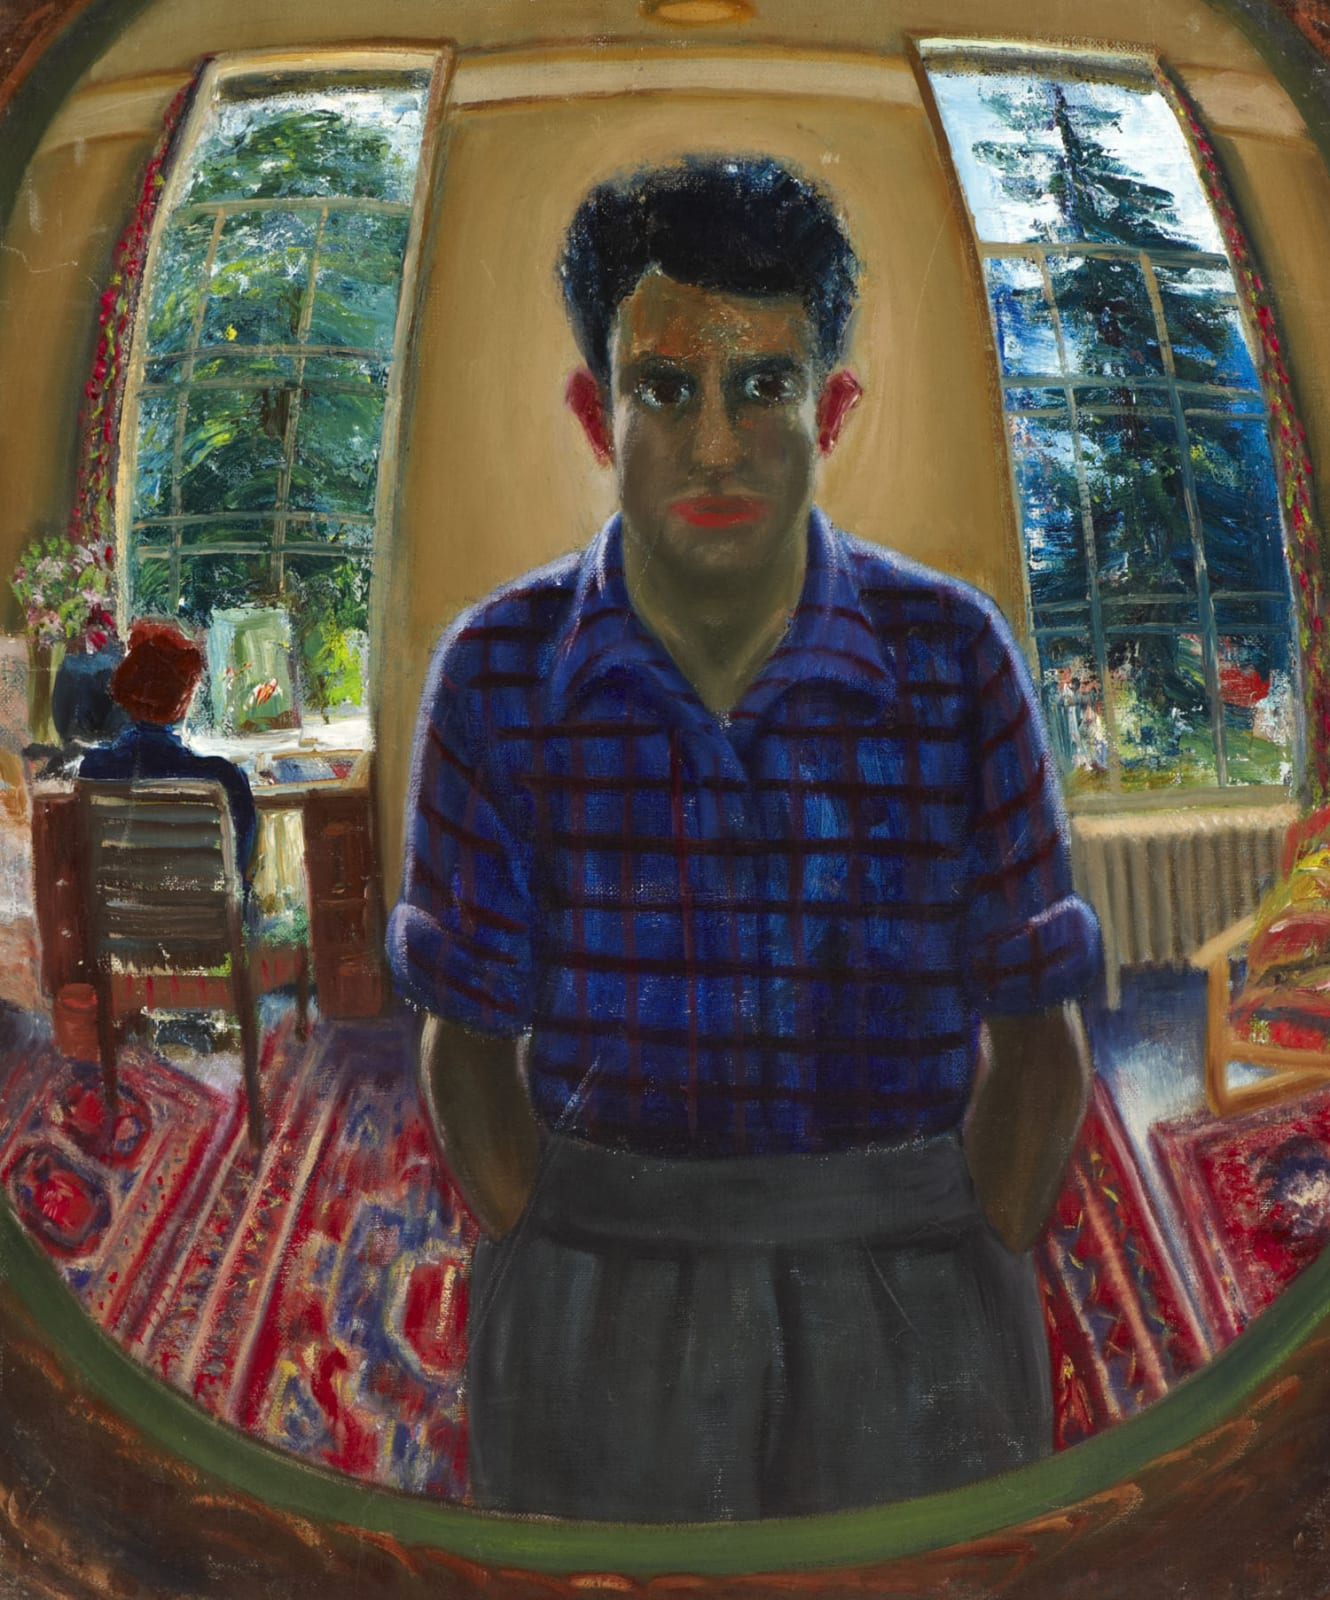 Maurice Mancini Roith (1900-1958) Man in the Mirror, Self Portrait n.d. Oil on canvas 60.5 x 50.8 cm Ben Uri Collection © Maurice Mancini Roith estate